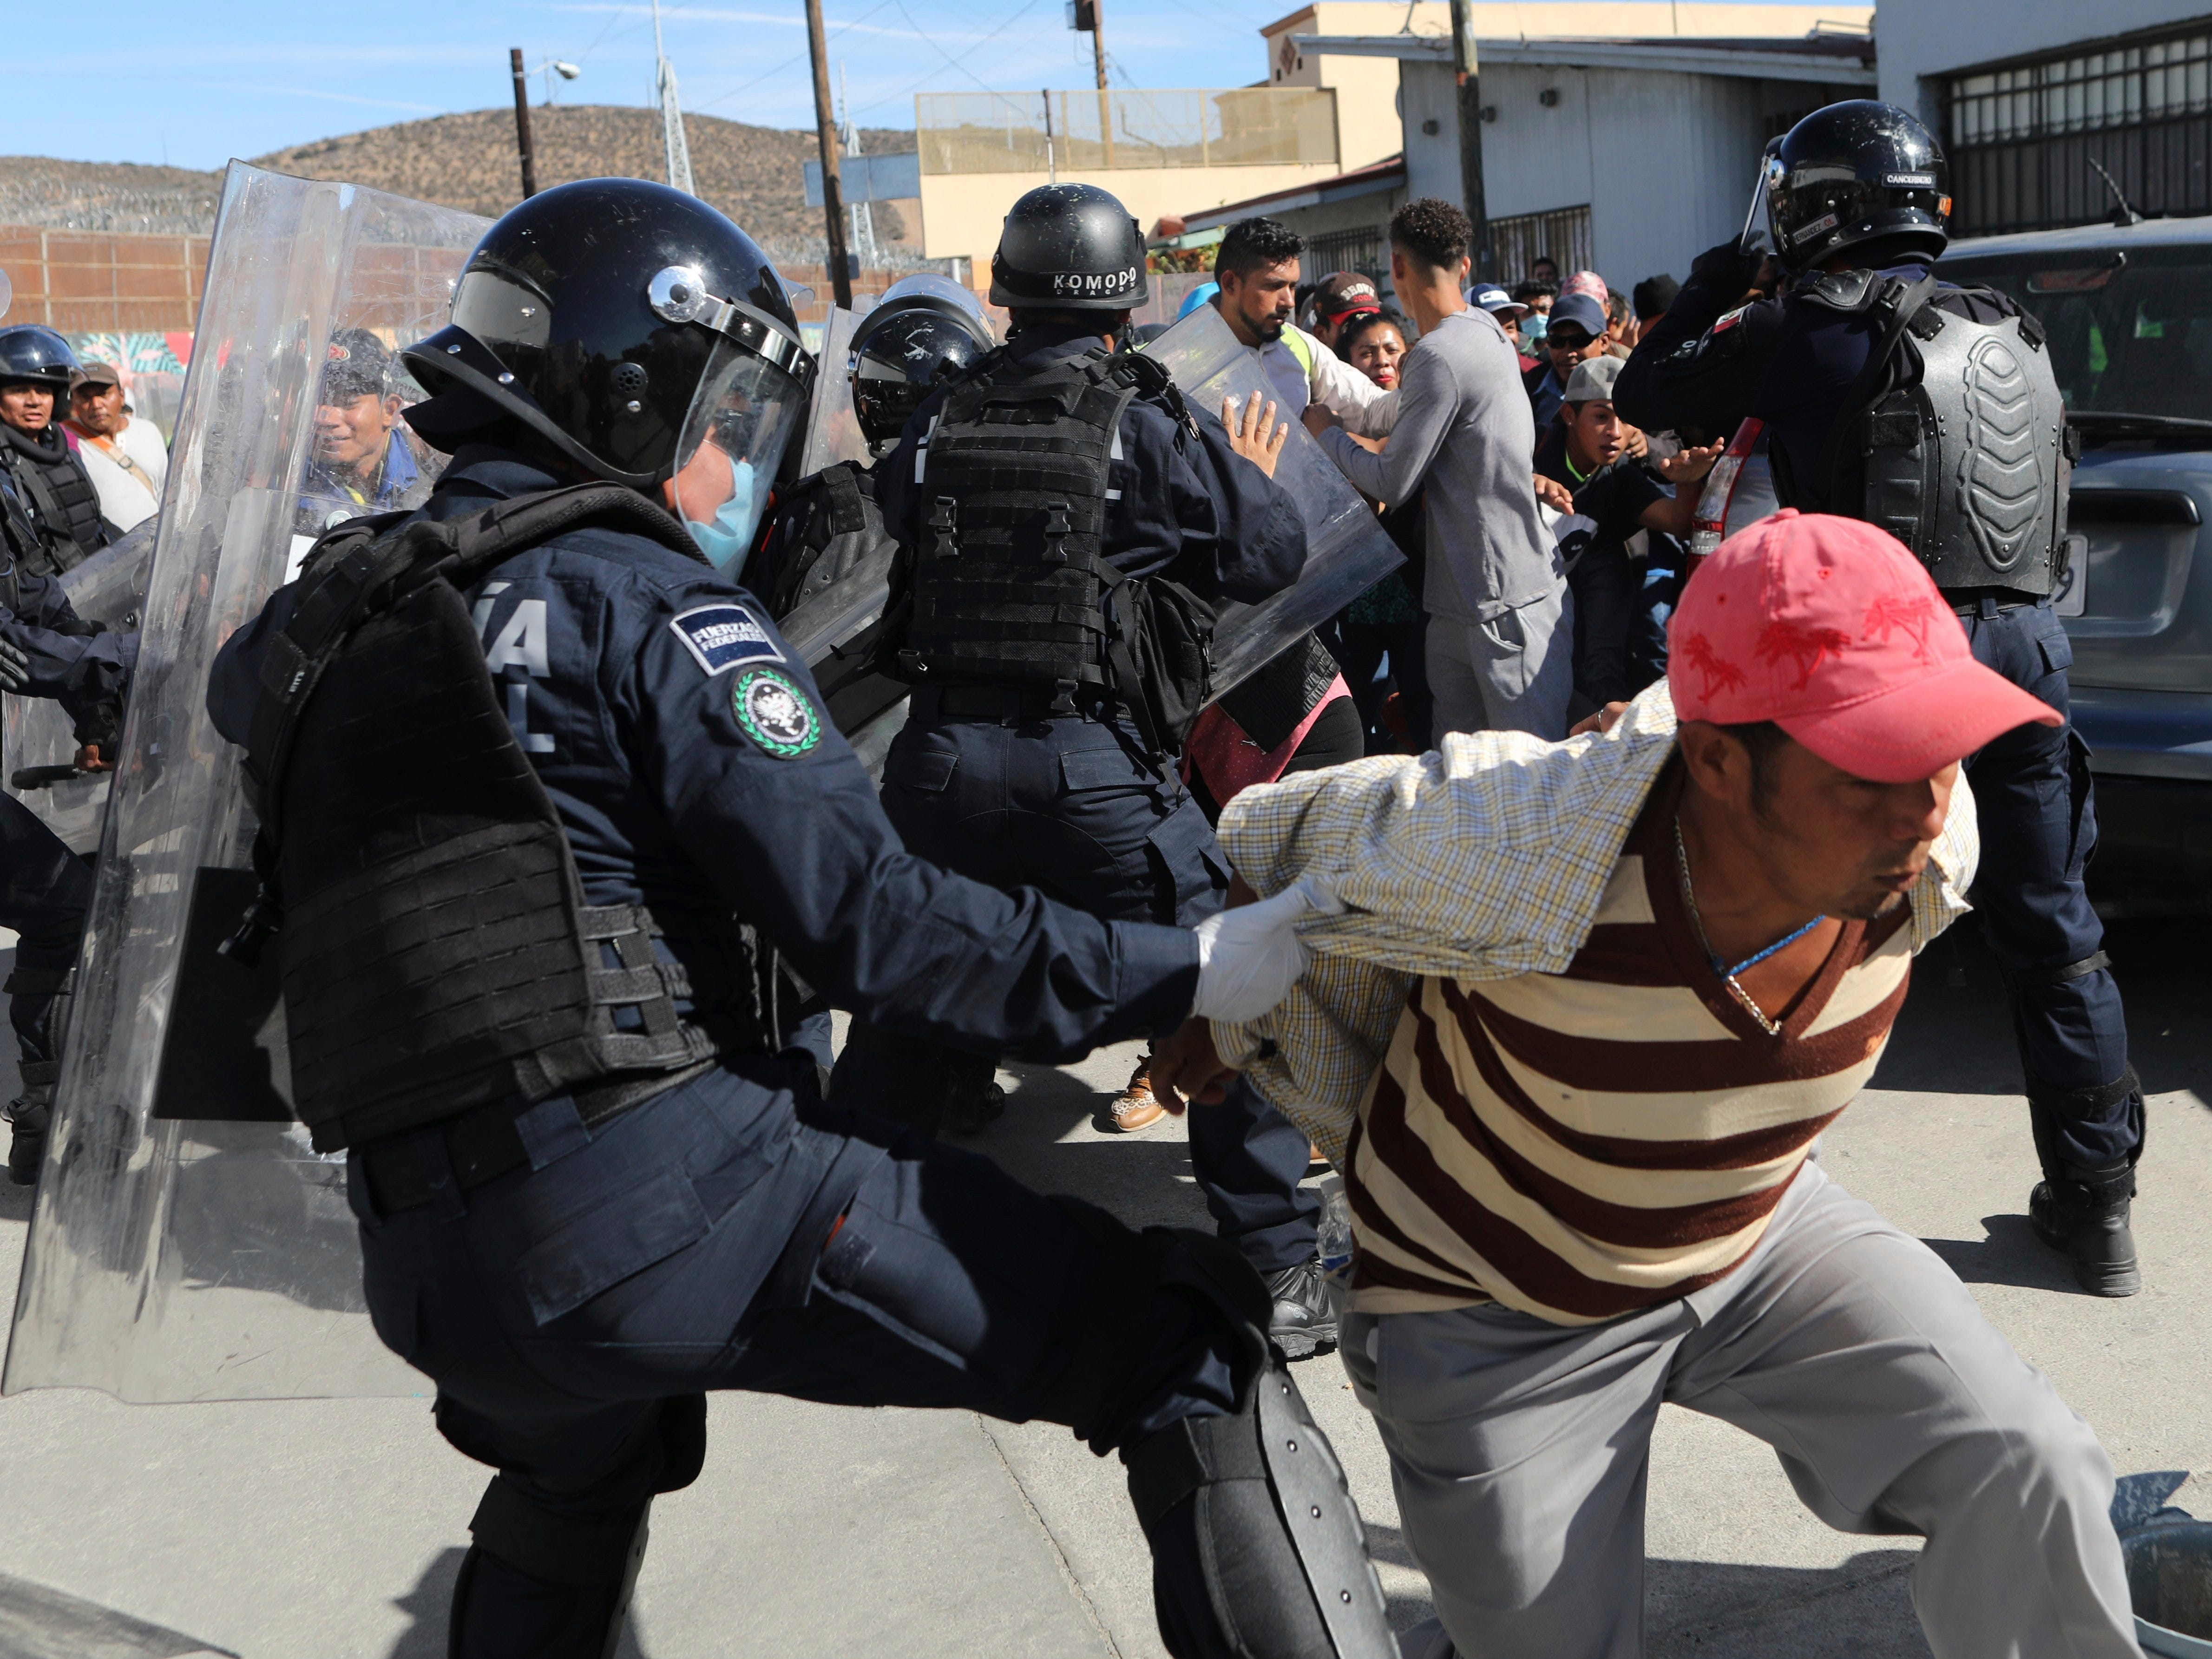 Migrants try to push past Mexican police on the Mexico-U.S. border at the Chaparral crossing in Tijuana, Mexico, Sunday, Nov. 25, 2018, as they try to reach the U.S. The mayor of Tijuana has declared a humanitarian crisis in his border city and says that he has asked the United Nations for aid to deal with the approximately 5,000 Central American migrants who have arrived in the city.